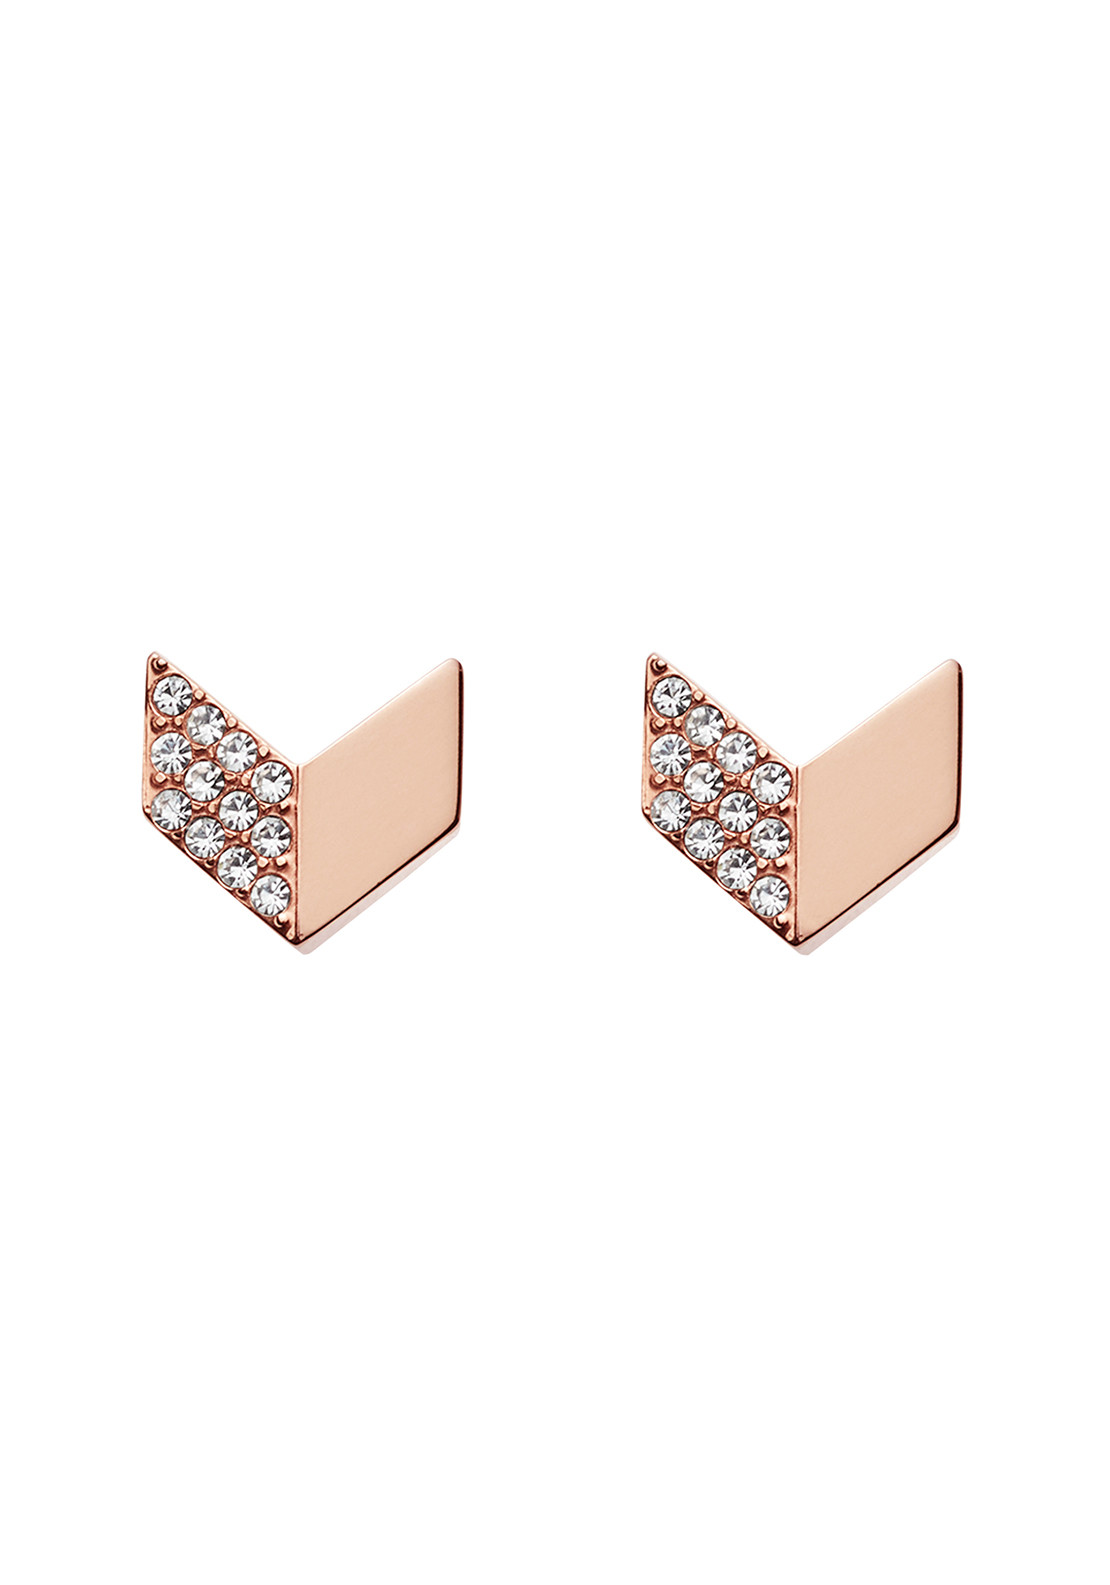 Fossil Glitz Chevron Stud Earrings, Rose Gold